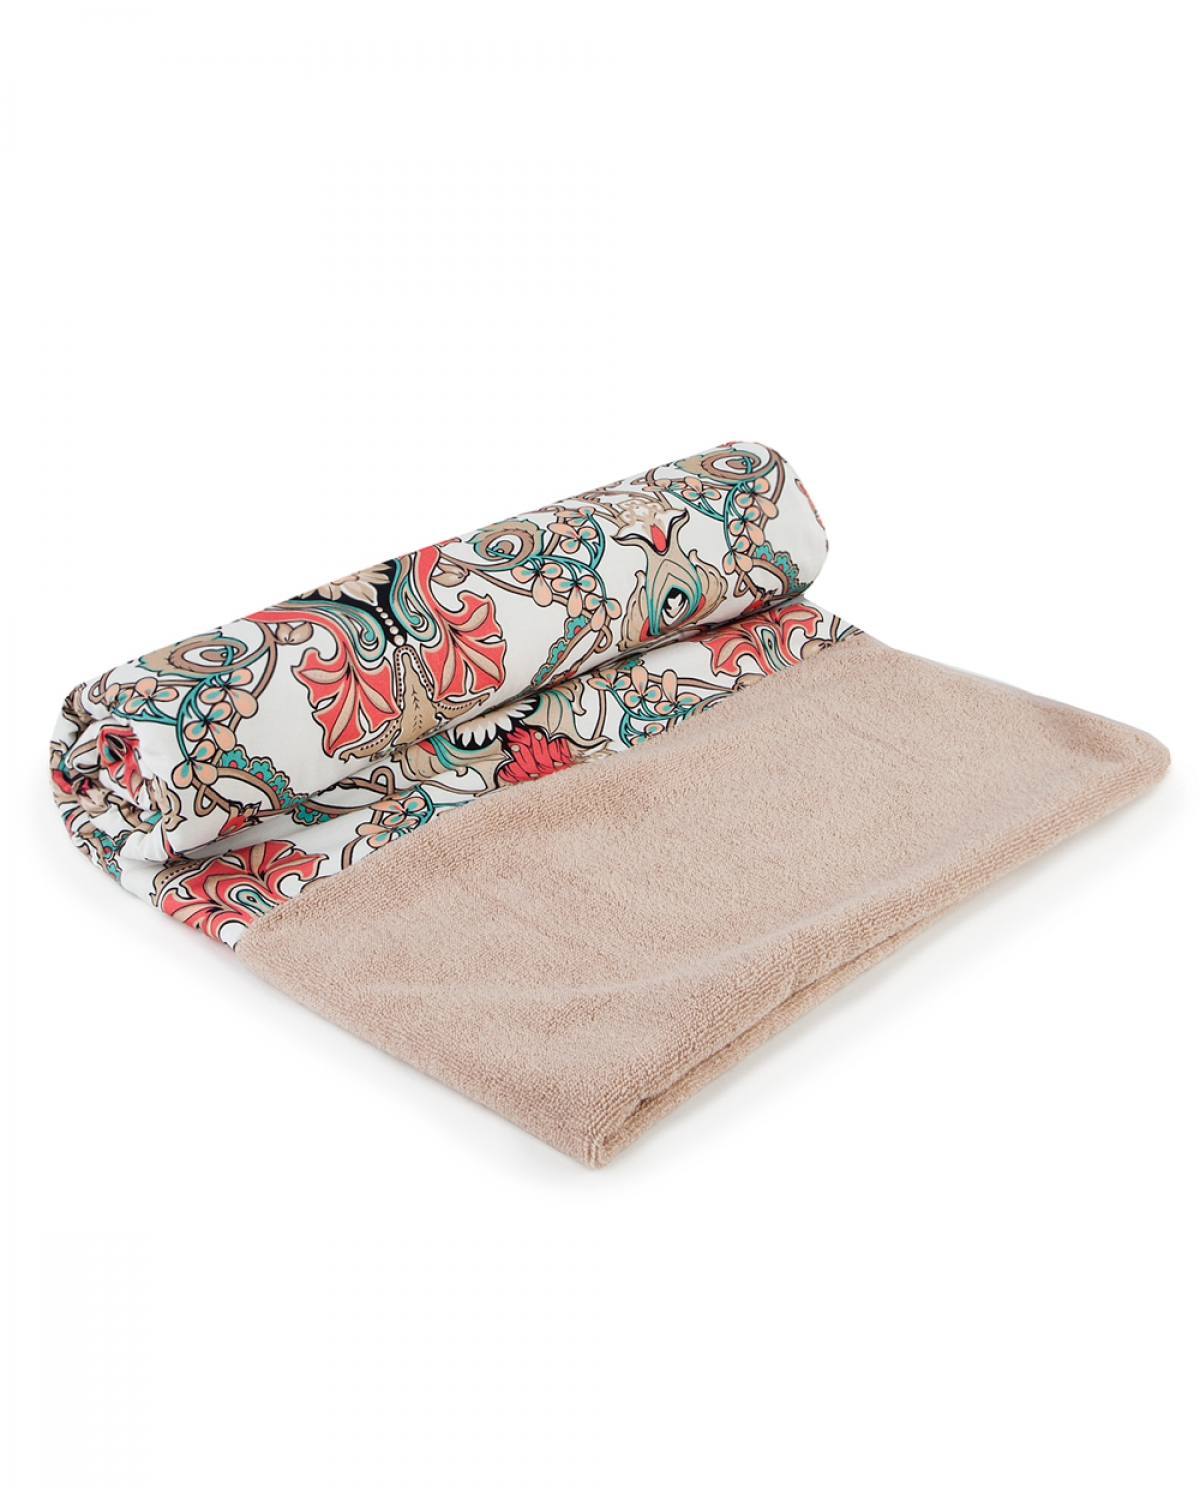 Marrakech Beige Beach Towel